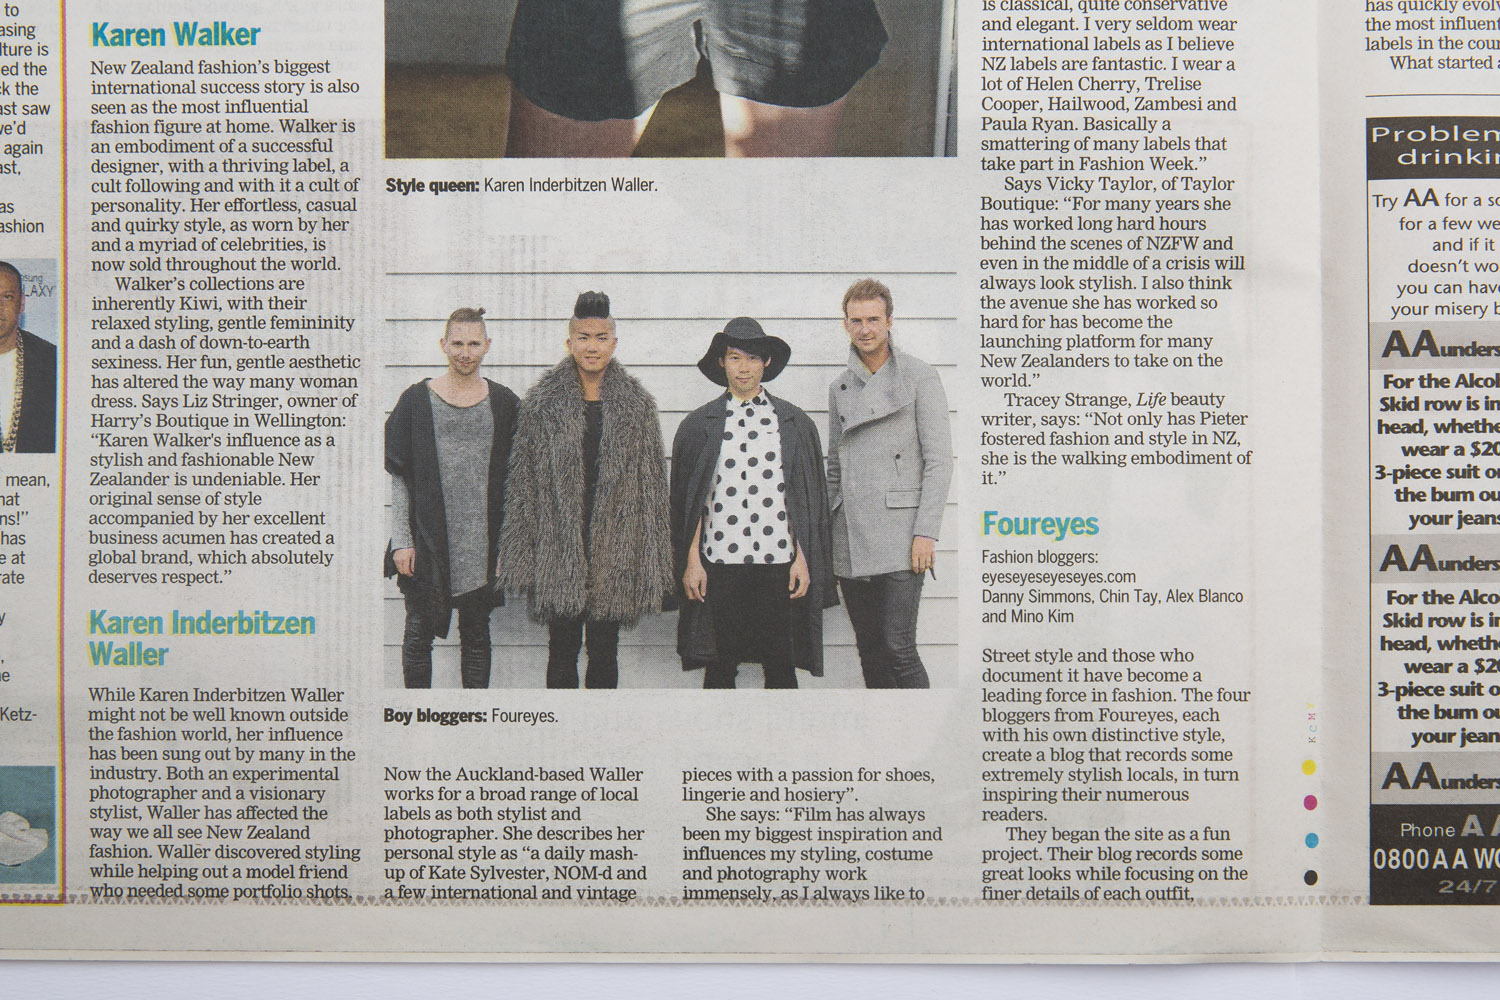 Foureyes feature in Dominion Post Newspaper